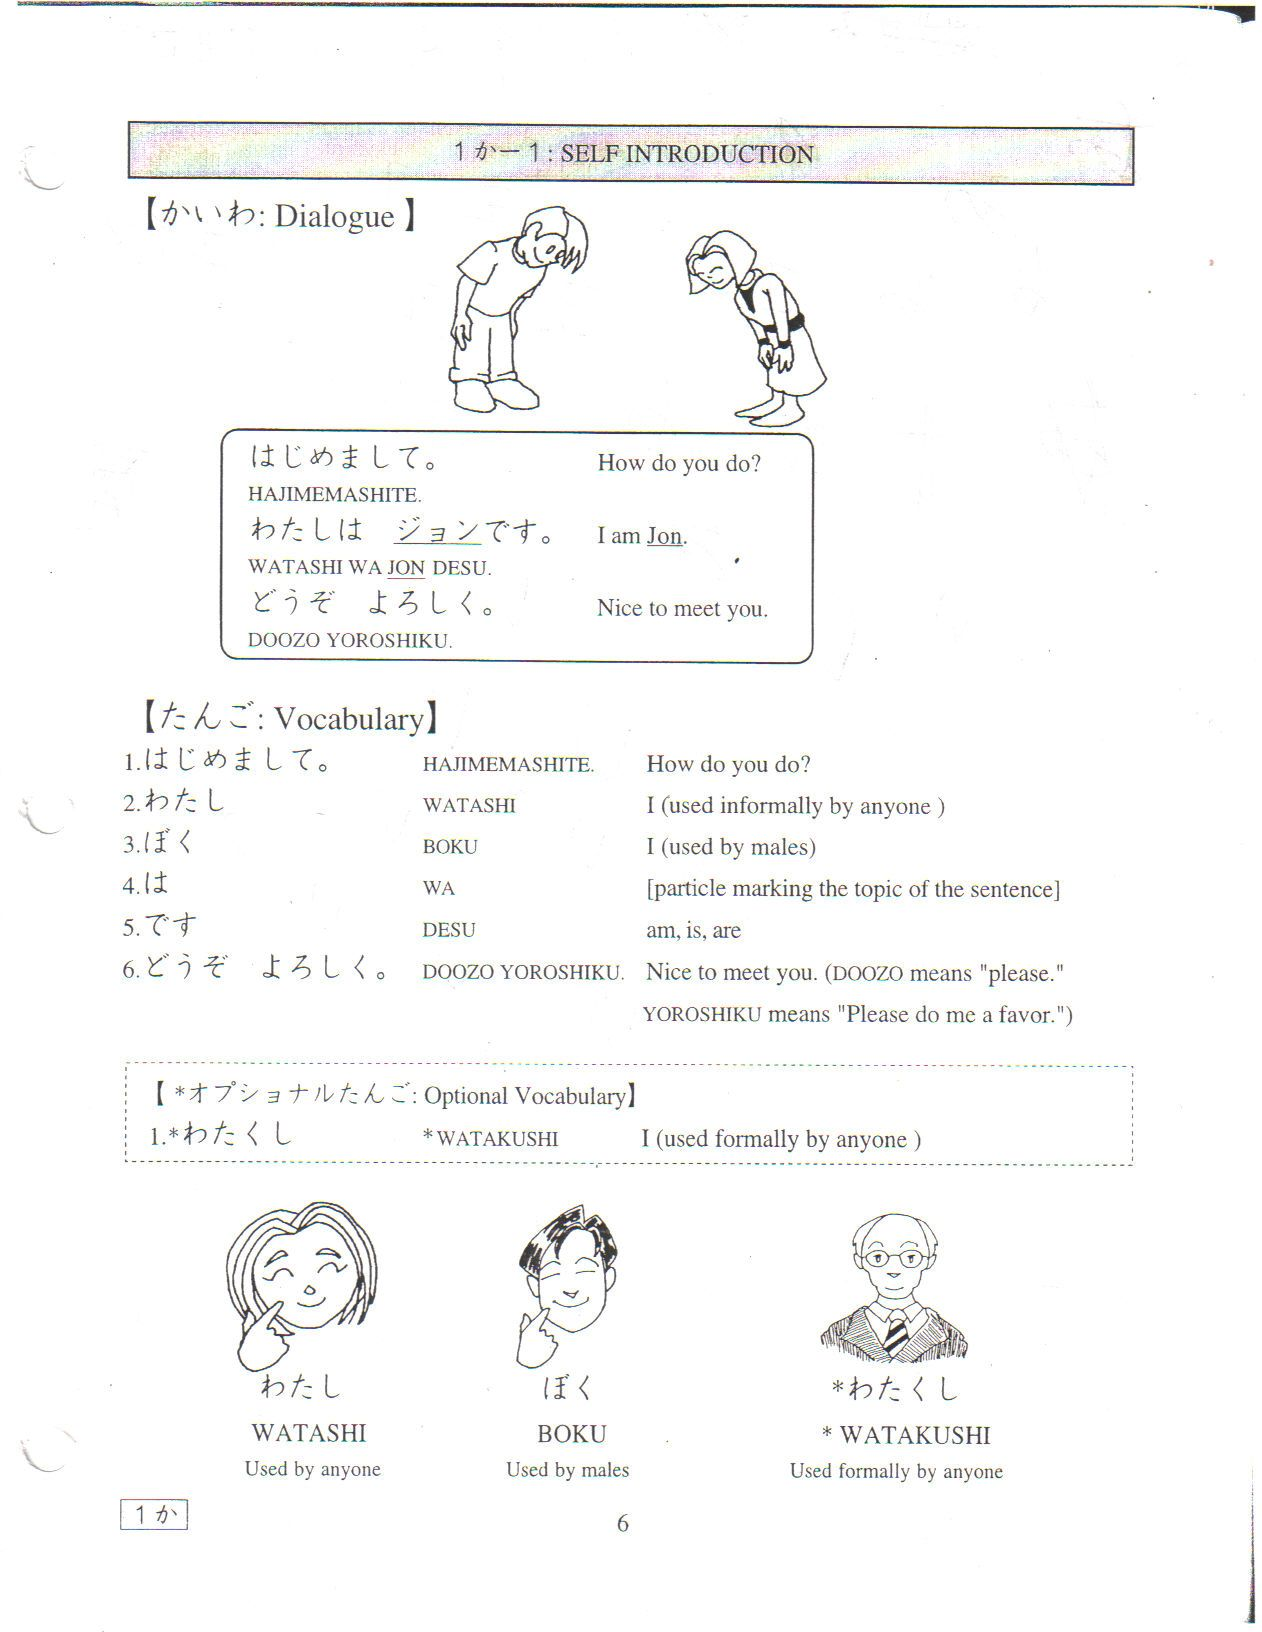 Worksheets Japanese Grammar Worksheets self introduction japanese worksheet learning worksheet